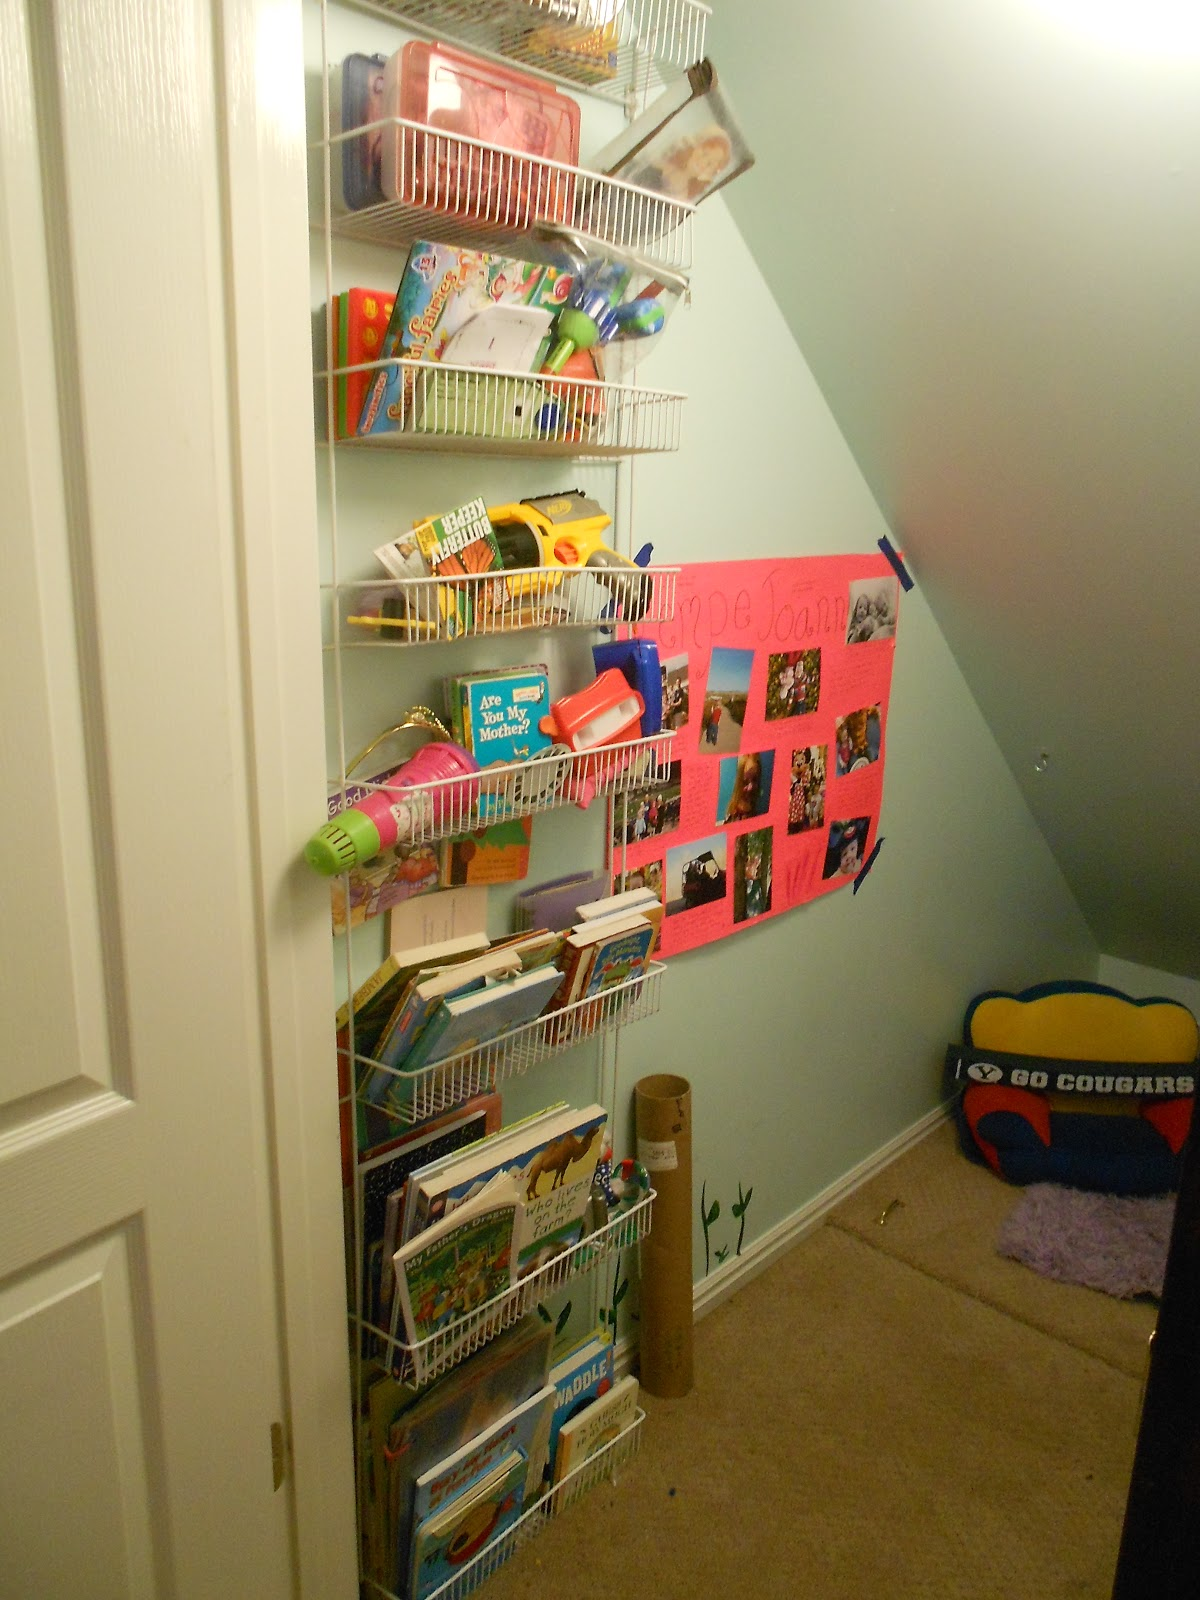 10 Types Of Toy Organizers For Kids Bedrooms And Playrooms: My Kids Eat Off The Floor: Flashback: Closet Playroom